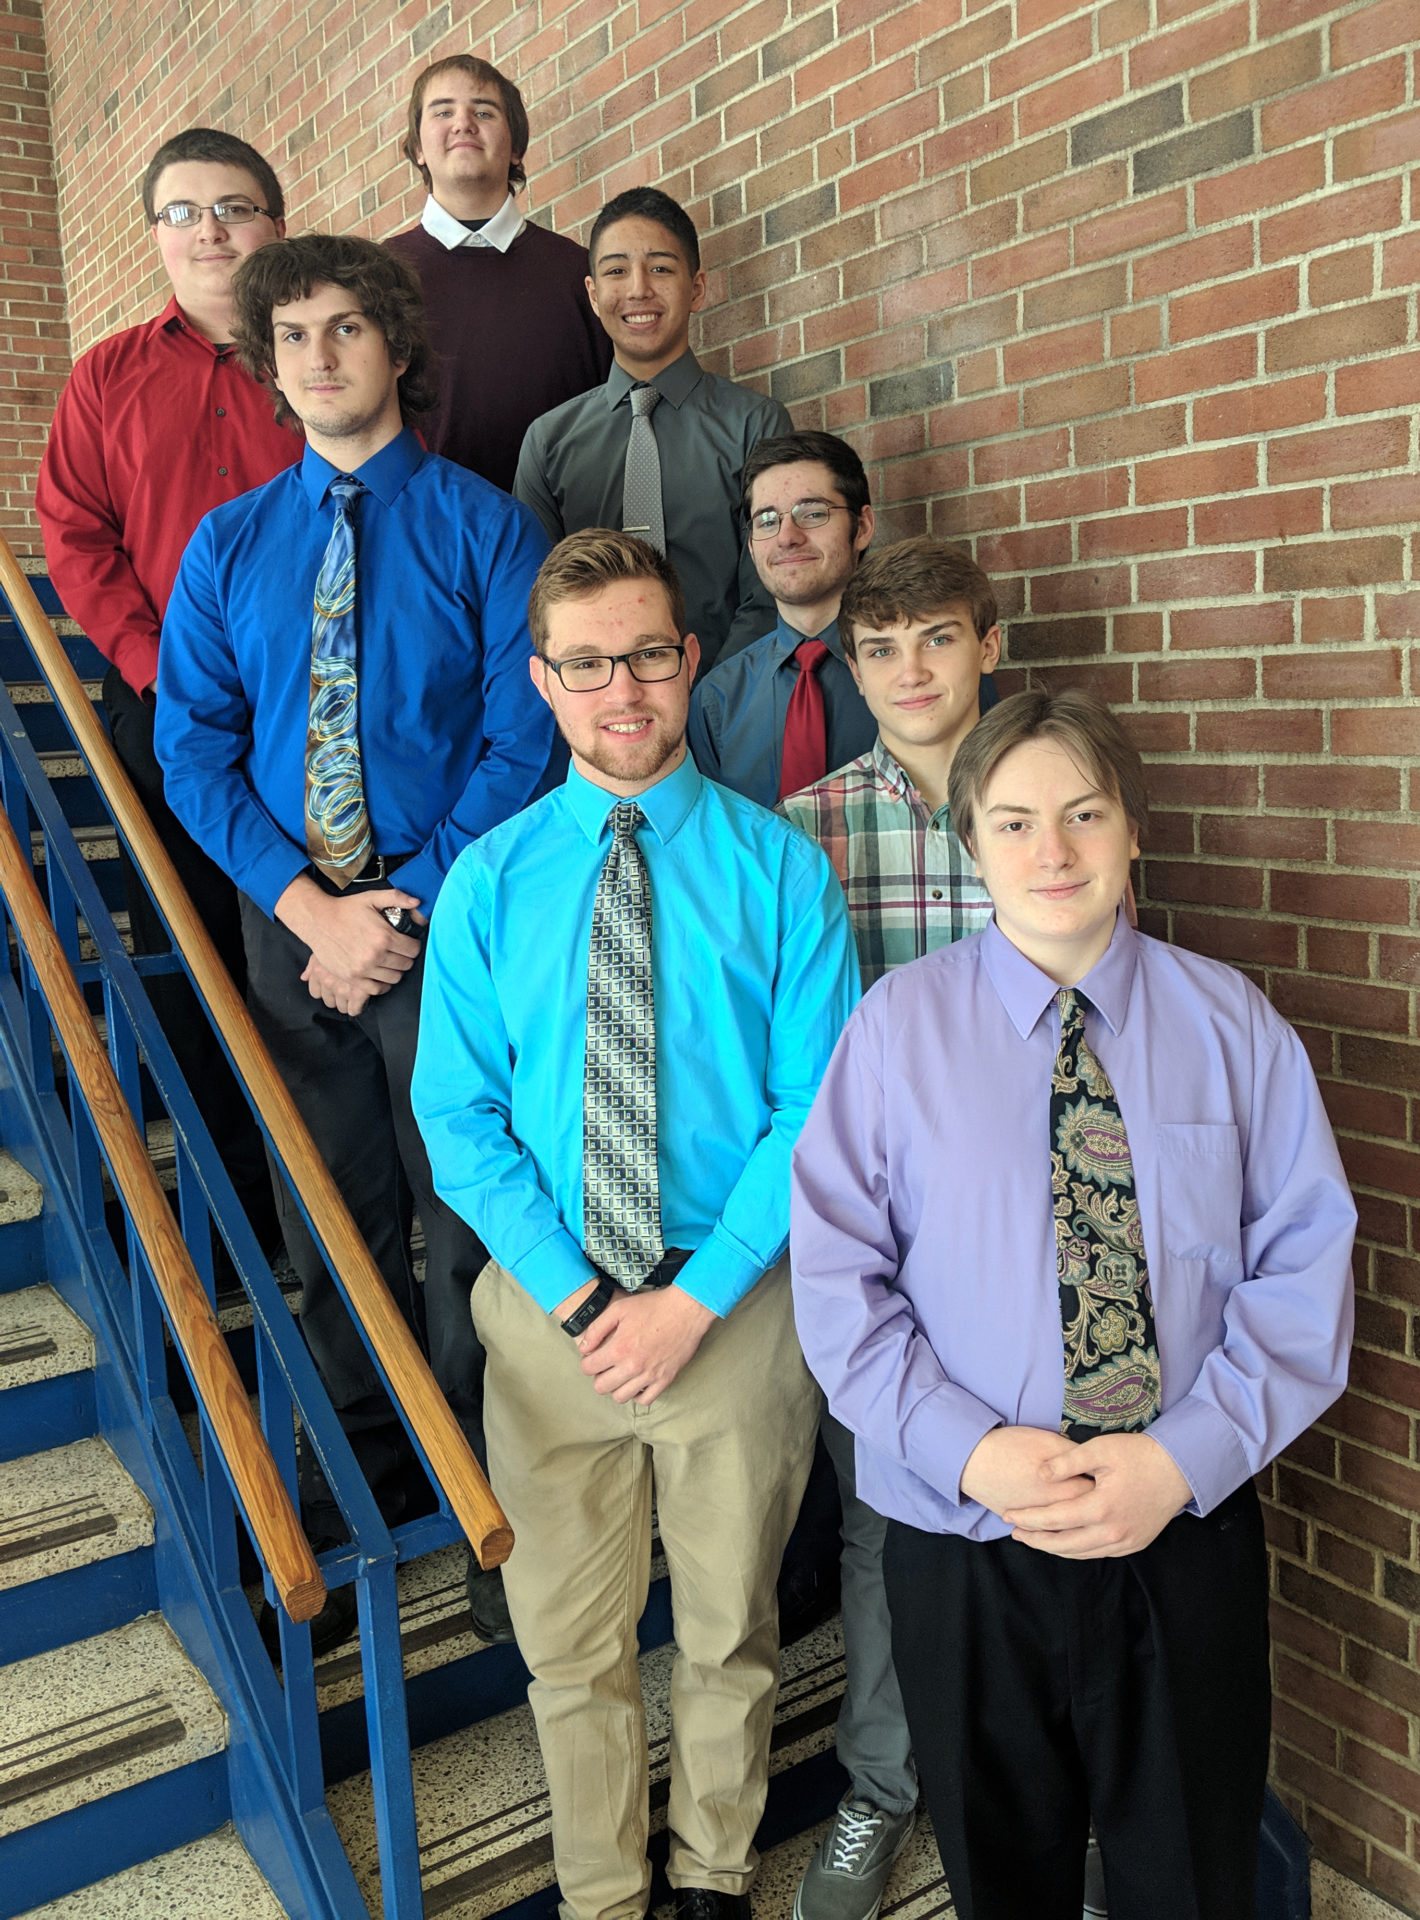 Top row: Wade Wampler and  Aaron Barlow. Middle row: Alex Neumeister, Everette Golden and Zach Nash. Front row: Nick Christopher, Ethan Fort and William Sylvia.